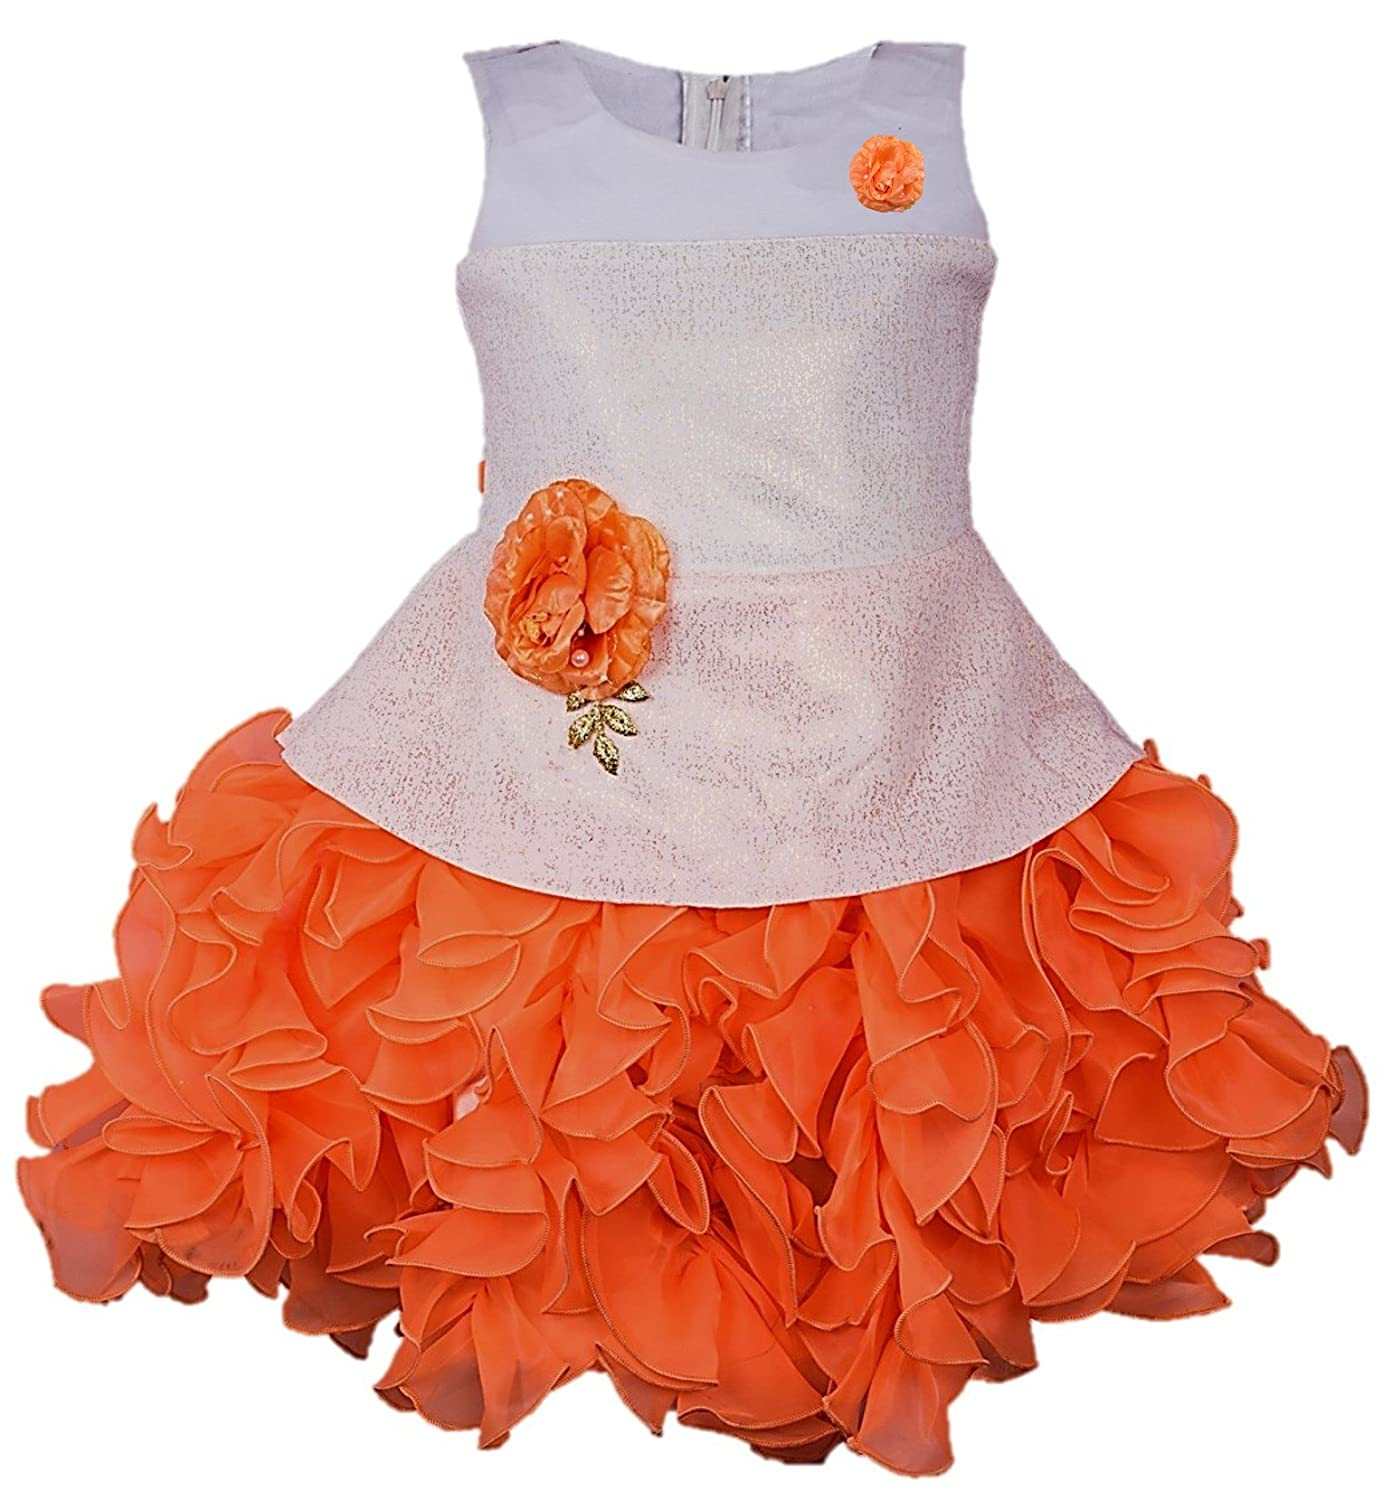 b5e856888 My Lil Princess Baby Girls Birthday Party wear Frock Dress ...